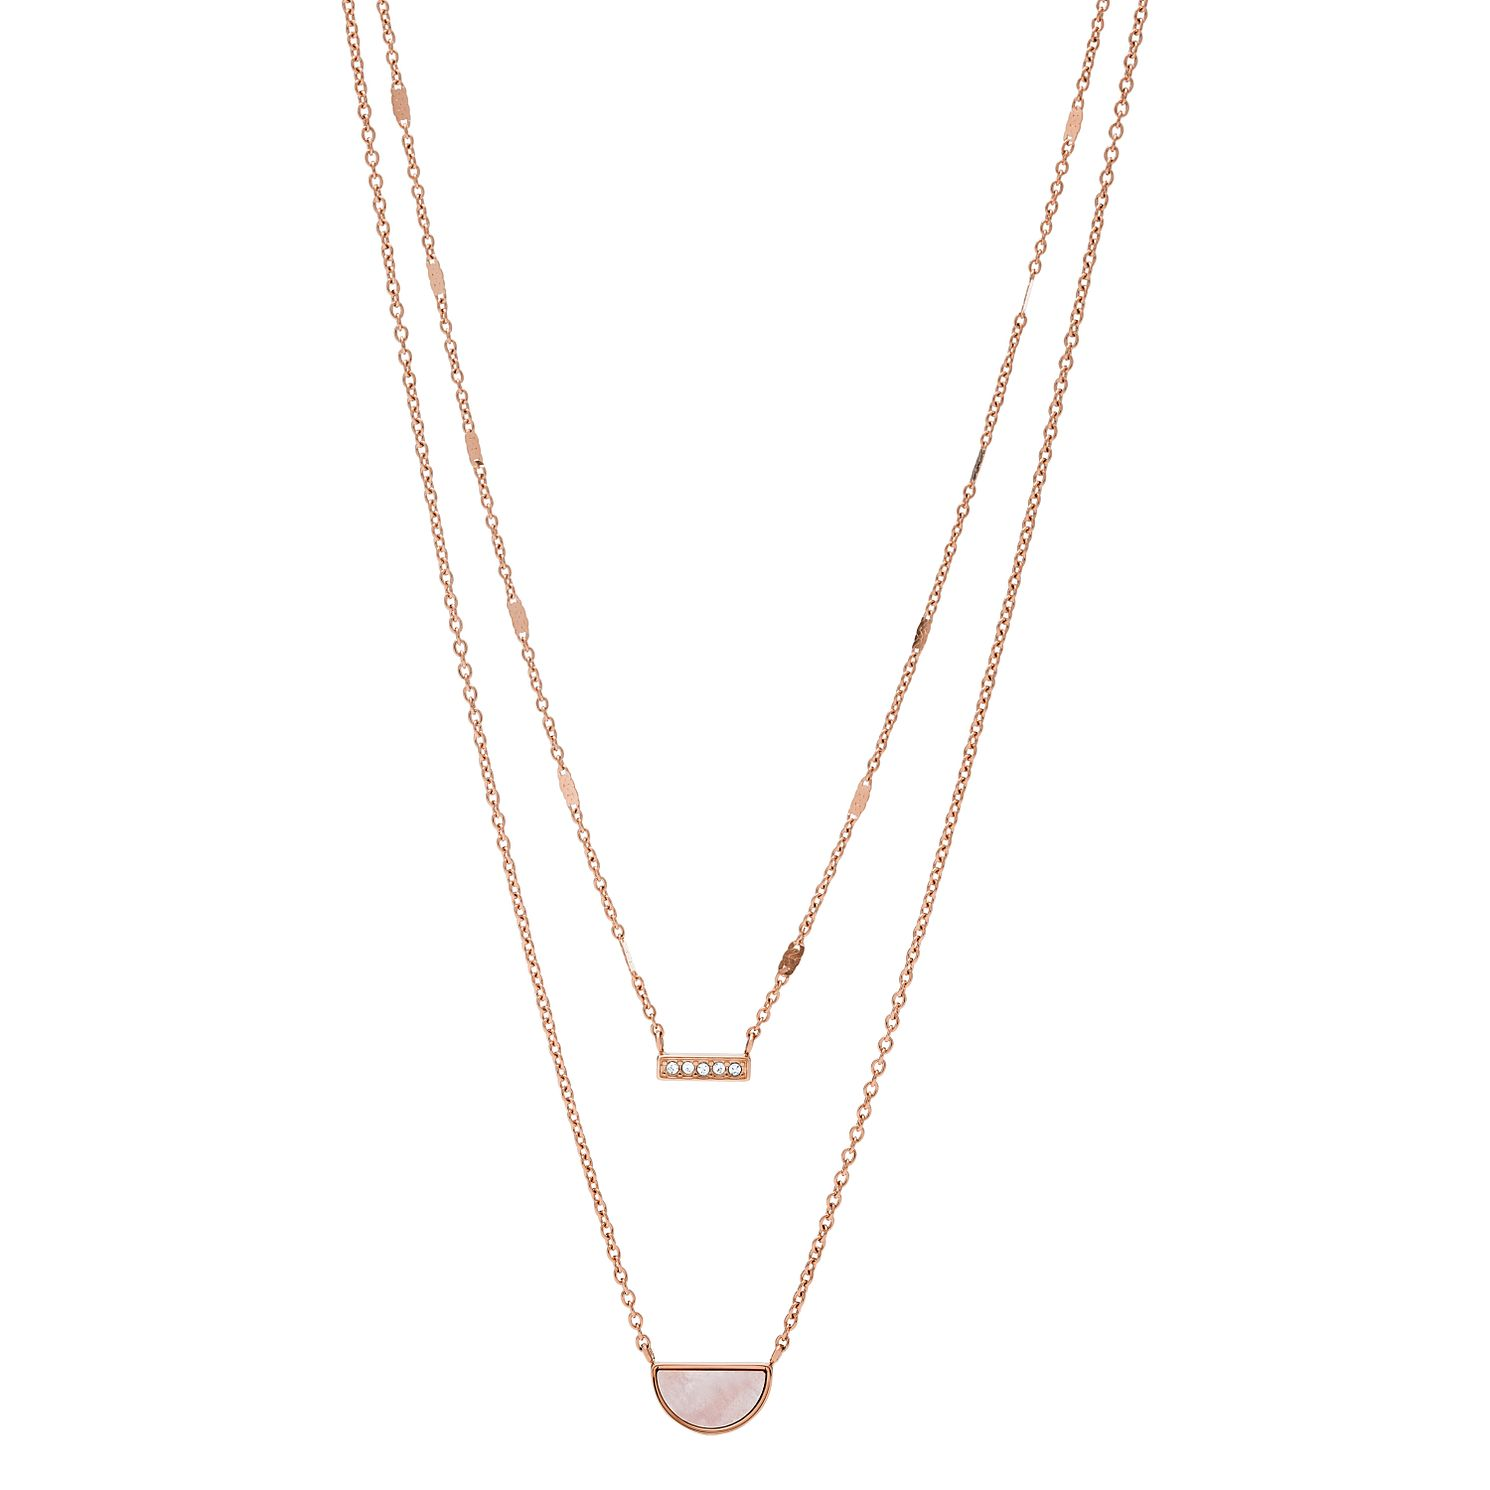 Fossil Rose Gold Tone Cubic Zirconia Duo Half Moon Necklace - Product number 2471418